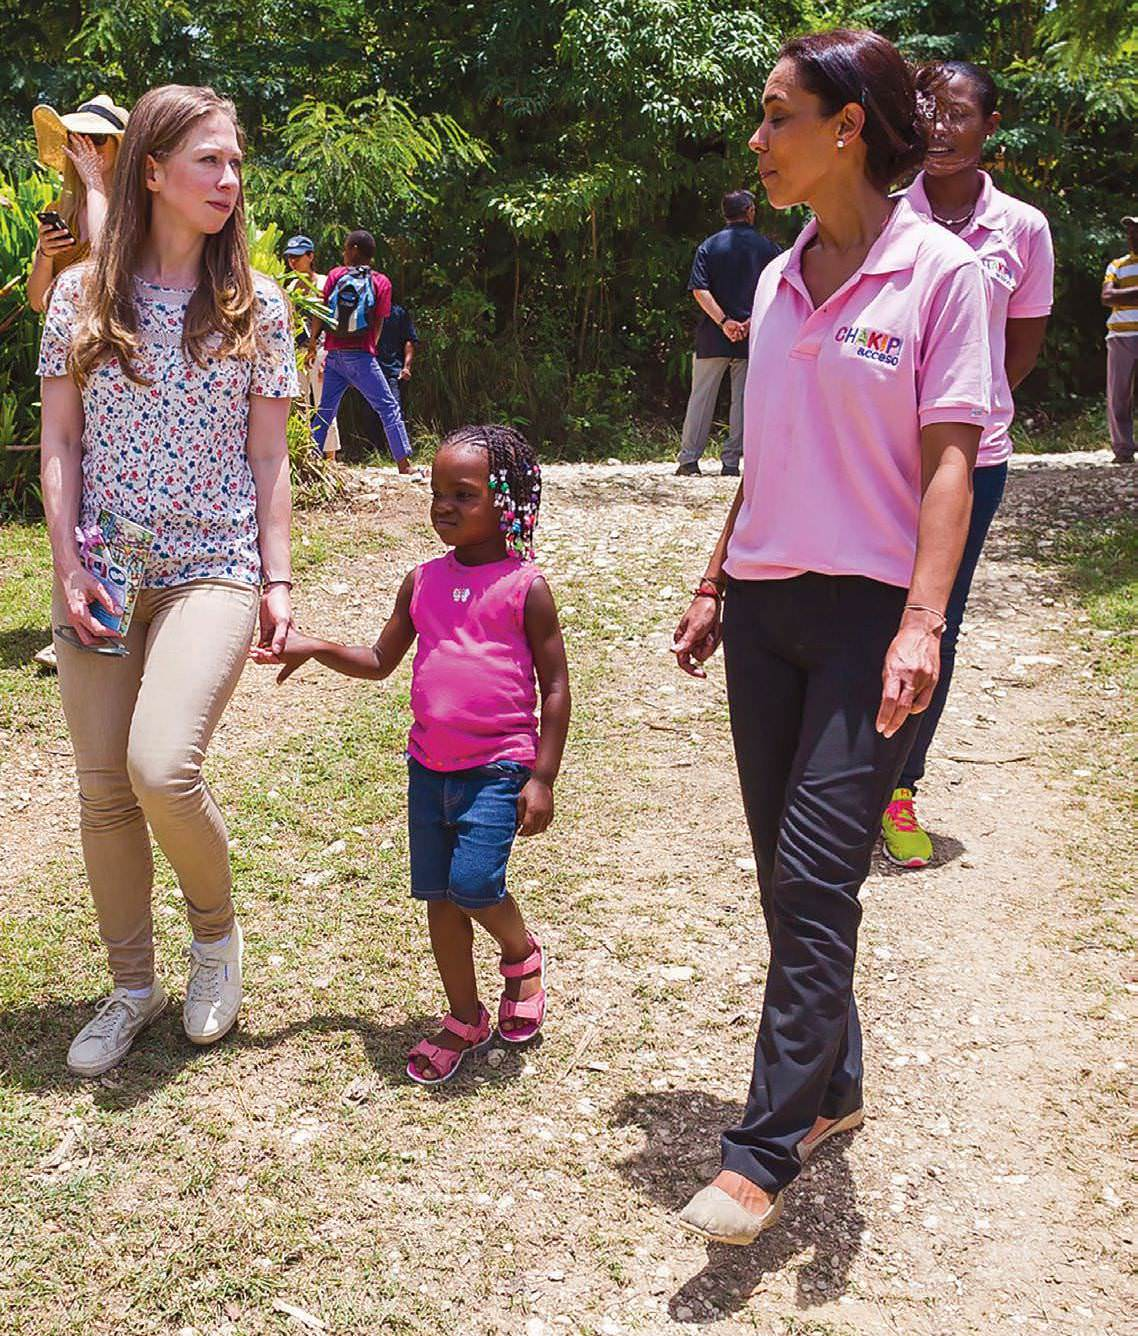 Chelsea Clinton On How To Make A Difference